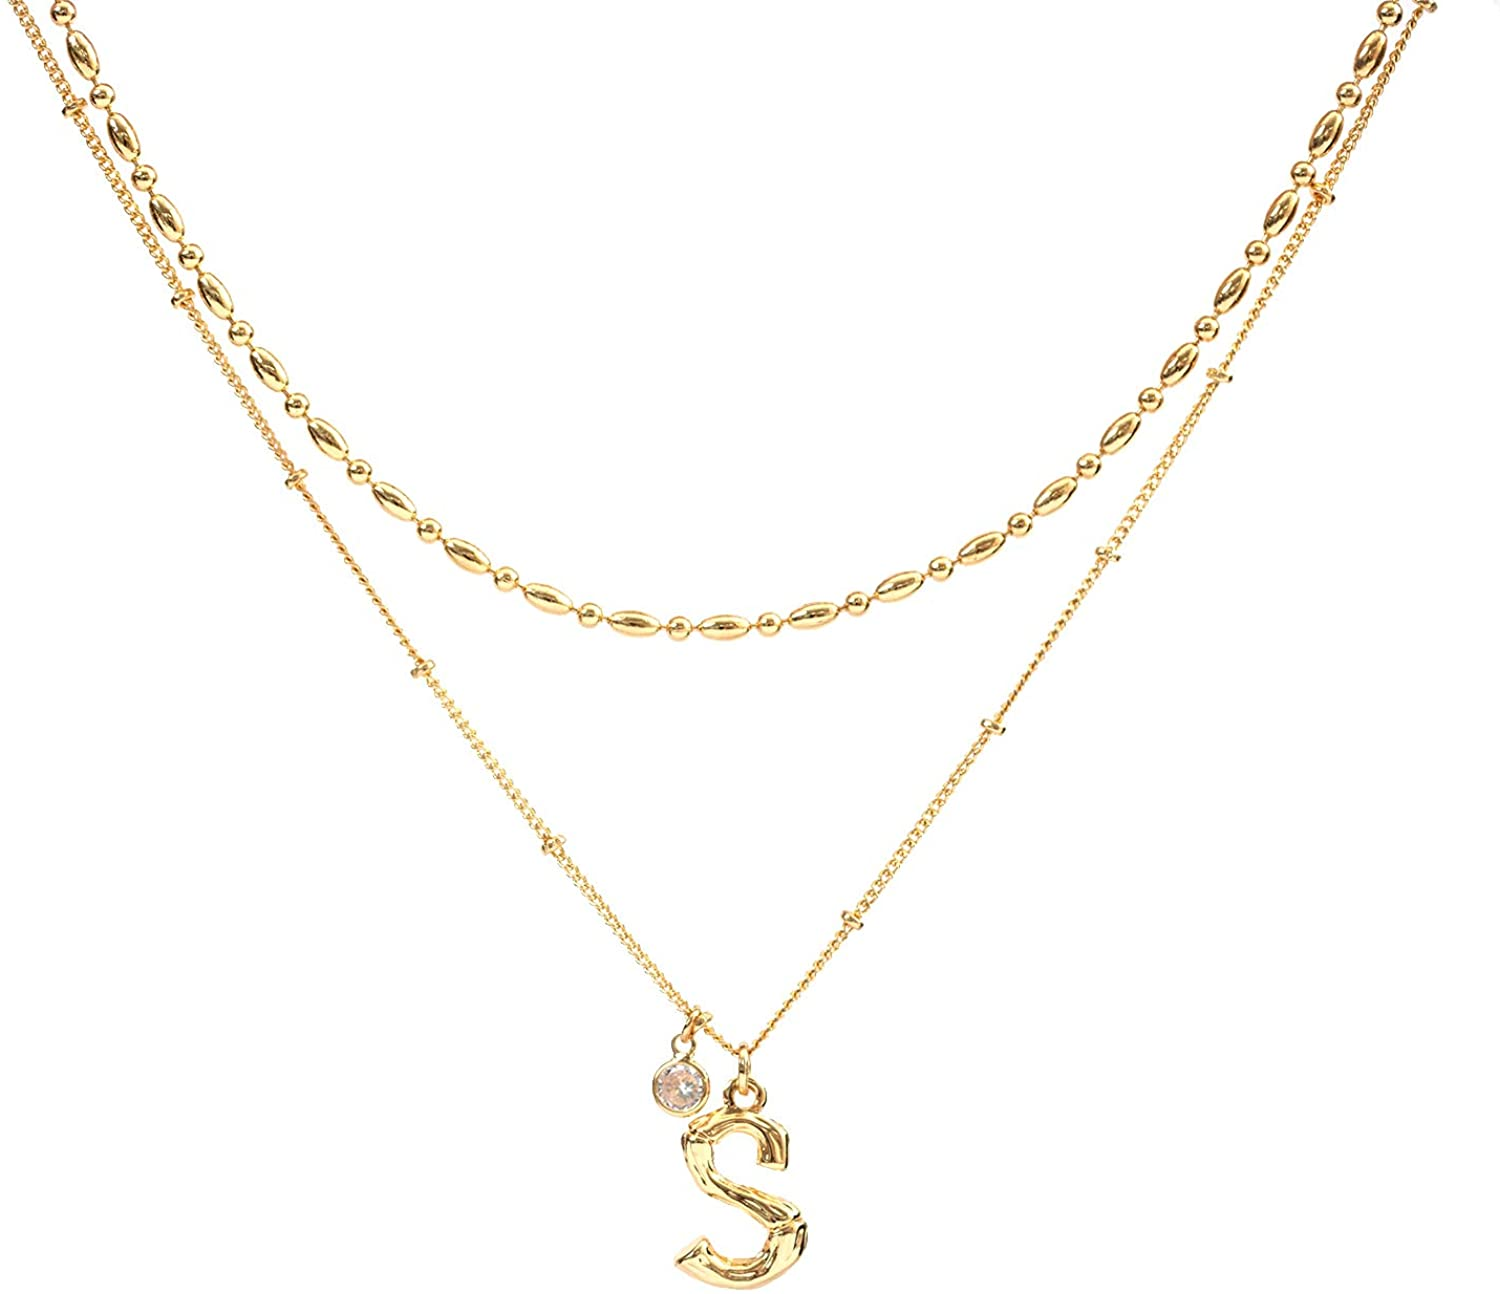 PESMES Layered Initial Necklaces 14K Gold Plated Bamboo Letter Necklace, Cubic Zirconia Beaded Chain Choker Set, Dainty Gold Letter Necklaces for Women